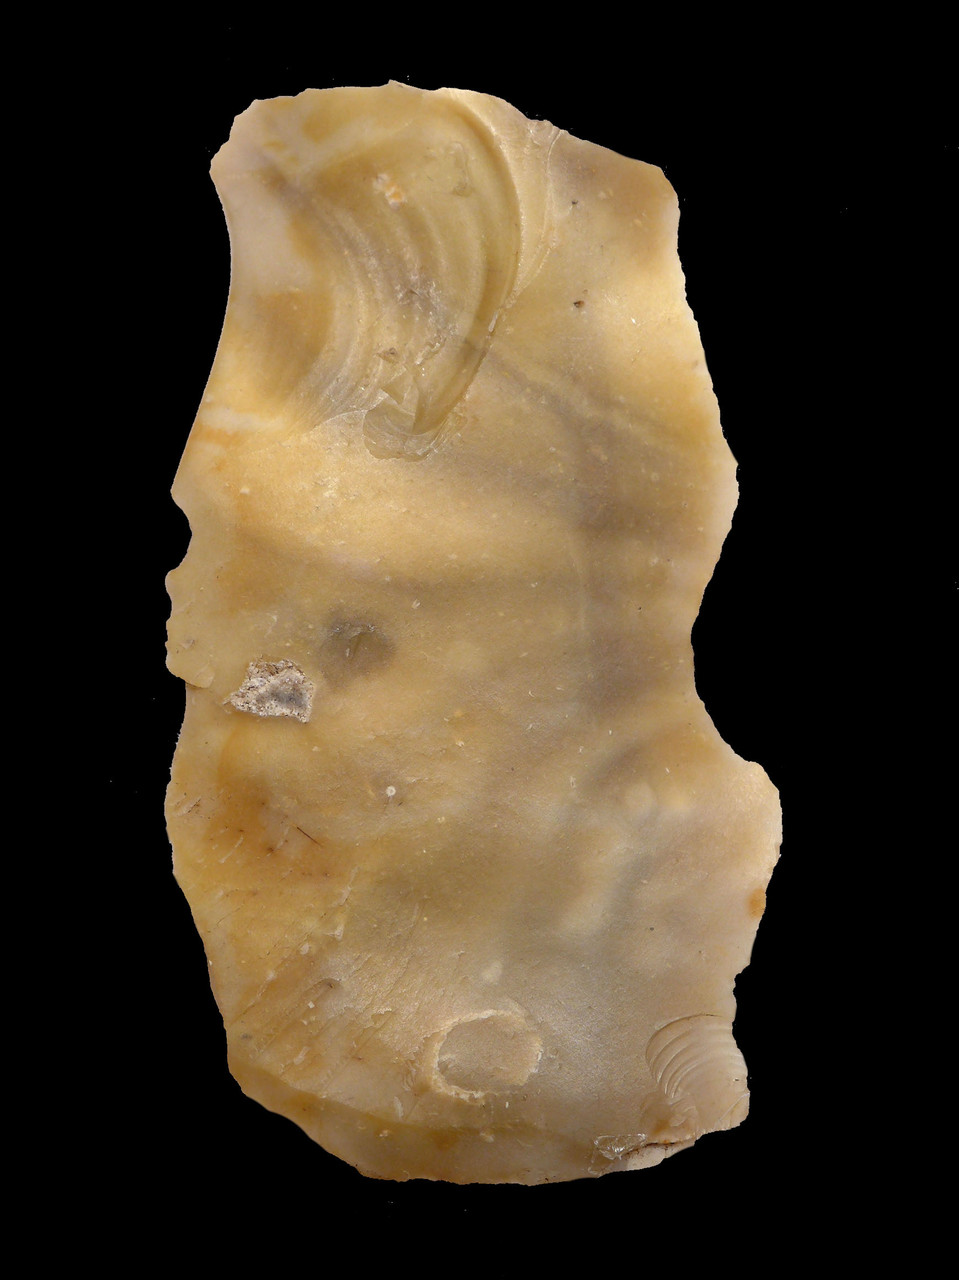 BEAUTIFUL BANDED DANISH NEOLITHIC NOTCH SCRAPER FLAKE TOOL FROM THE FUNNEL-NECKED BEAKER CULTURE  *N193